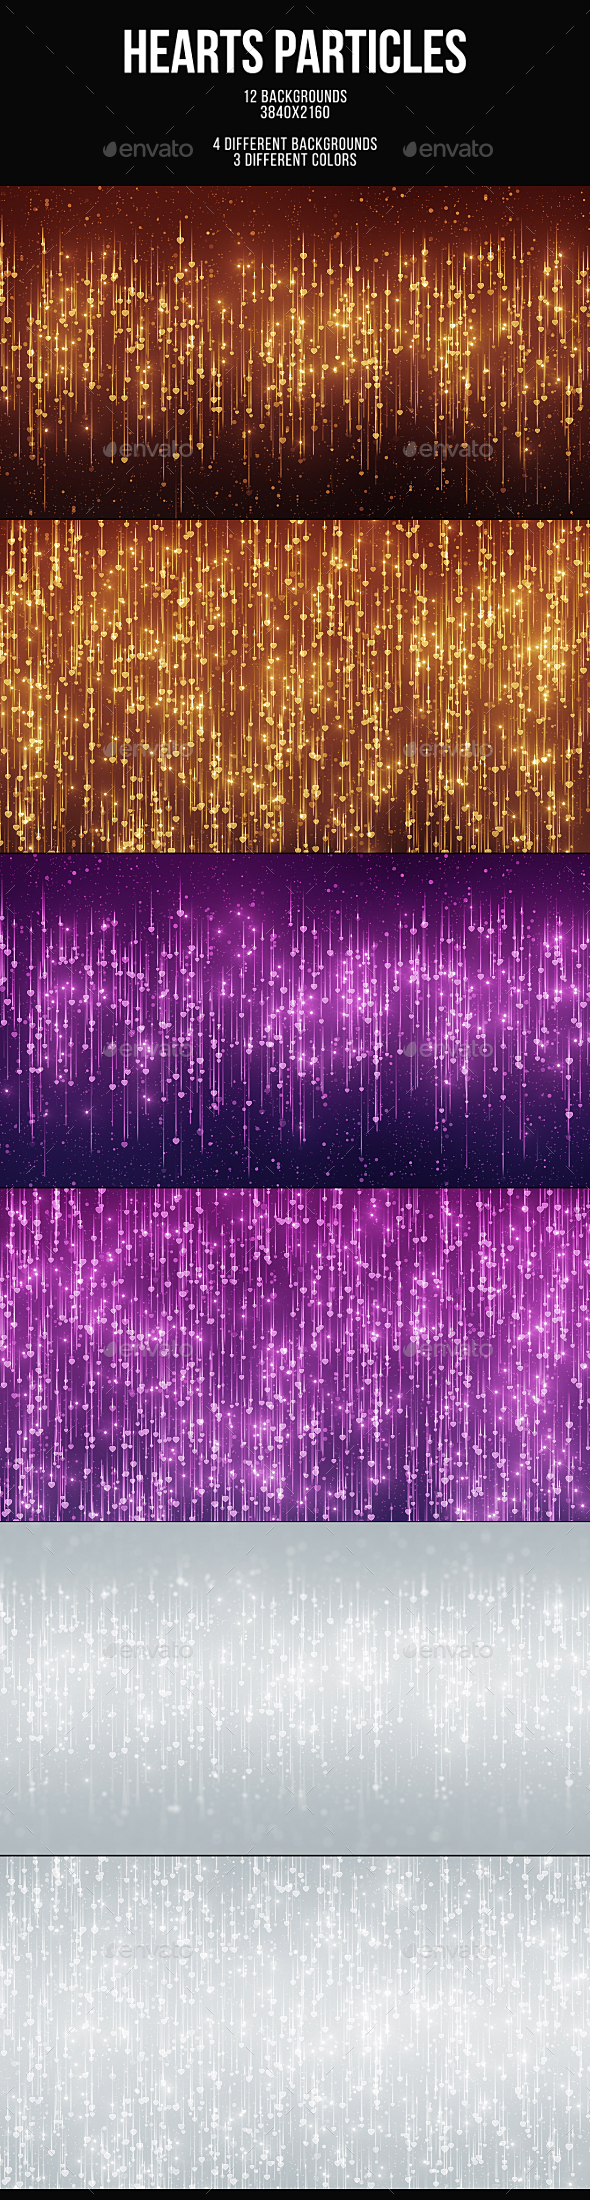 Hearts Particles Backgrounds - Abstract Backgrounds